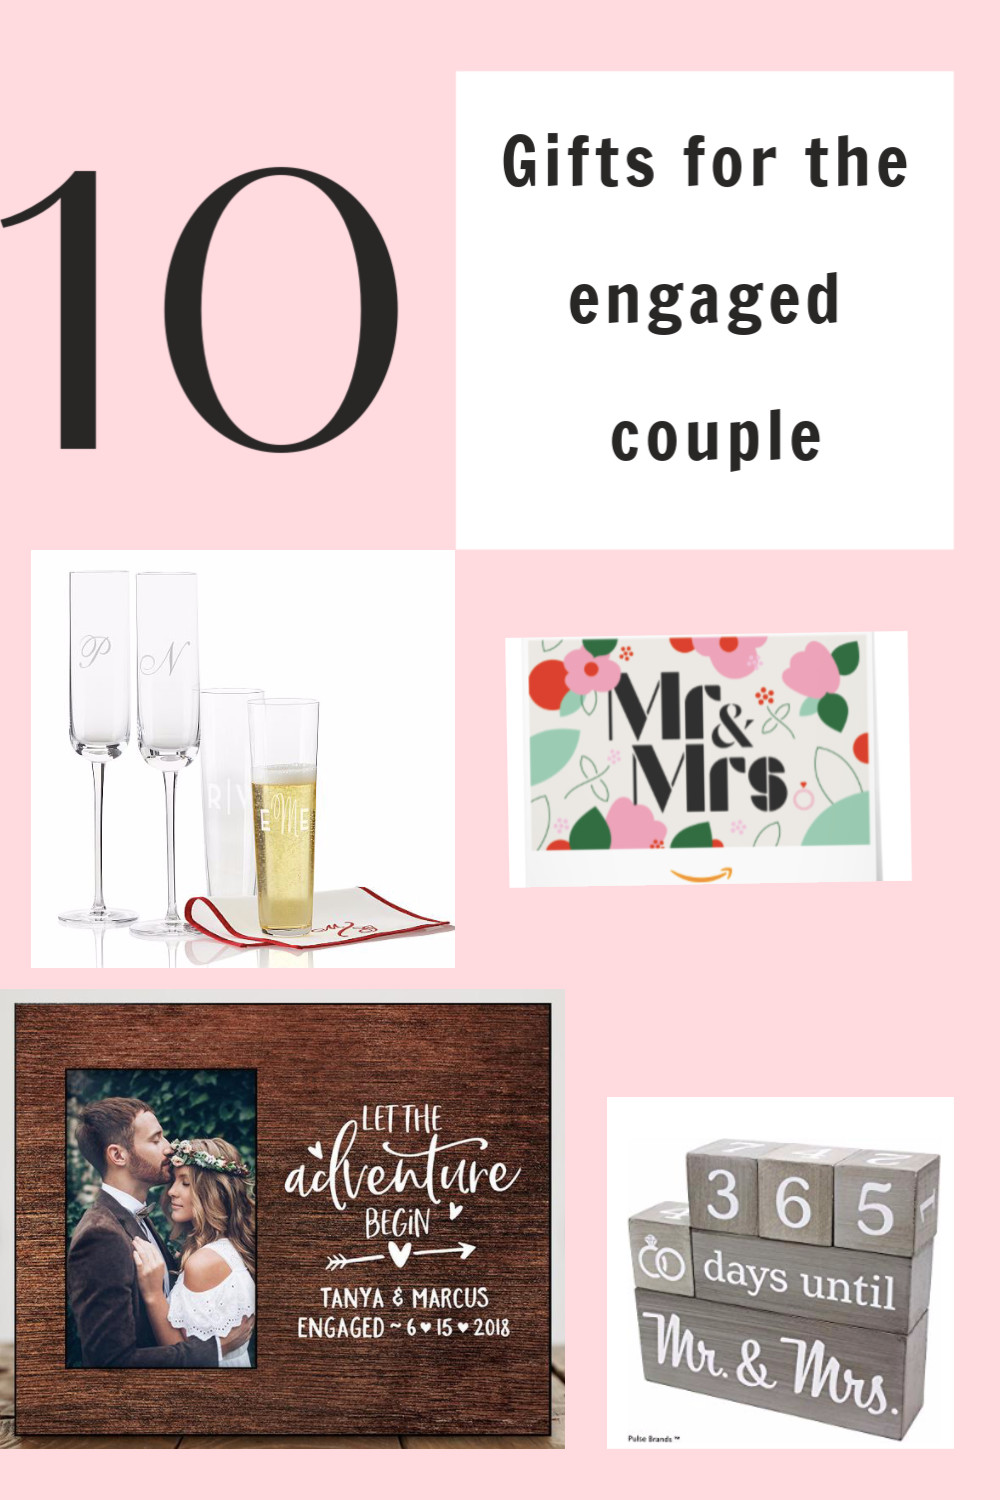 Gift Ideas For Engaged Couples  10 Cute Gift Ideas for the Engaged Couple